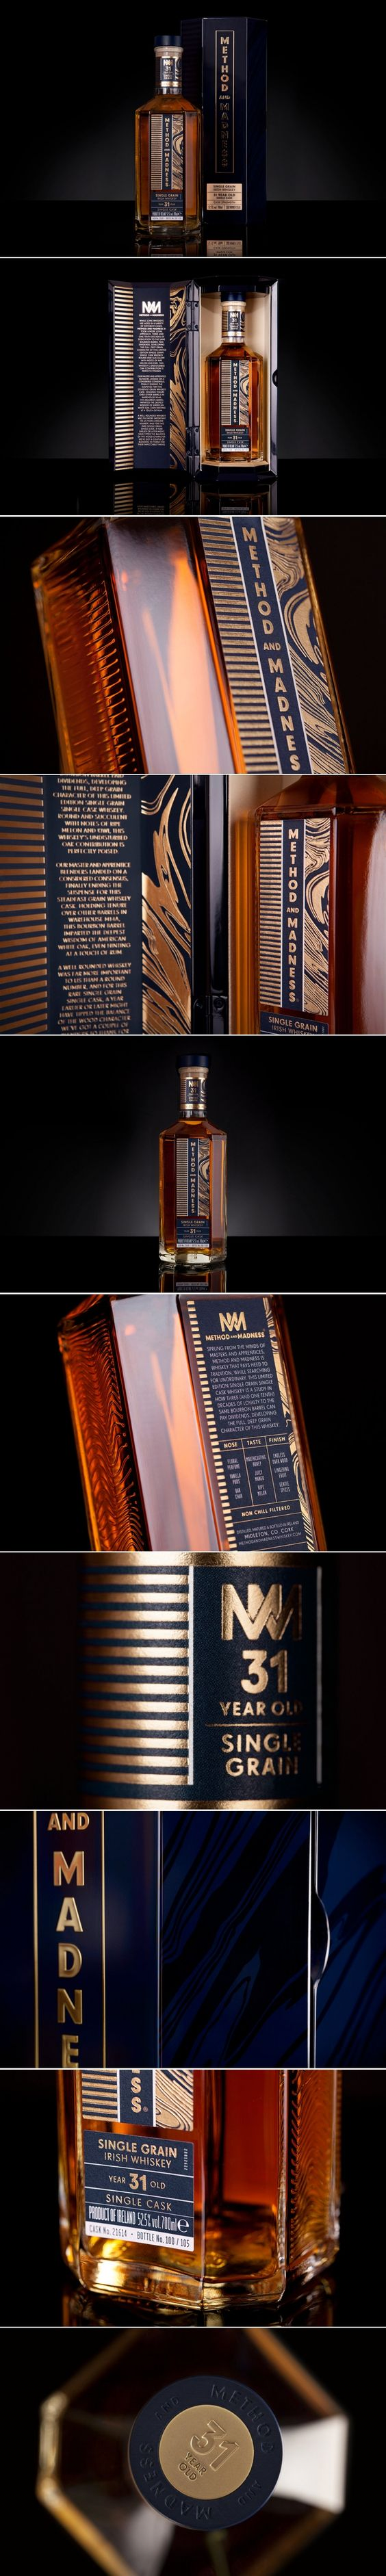 This Limited Edition Whiskey Packaging is Gorgeous